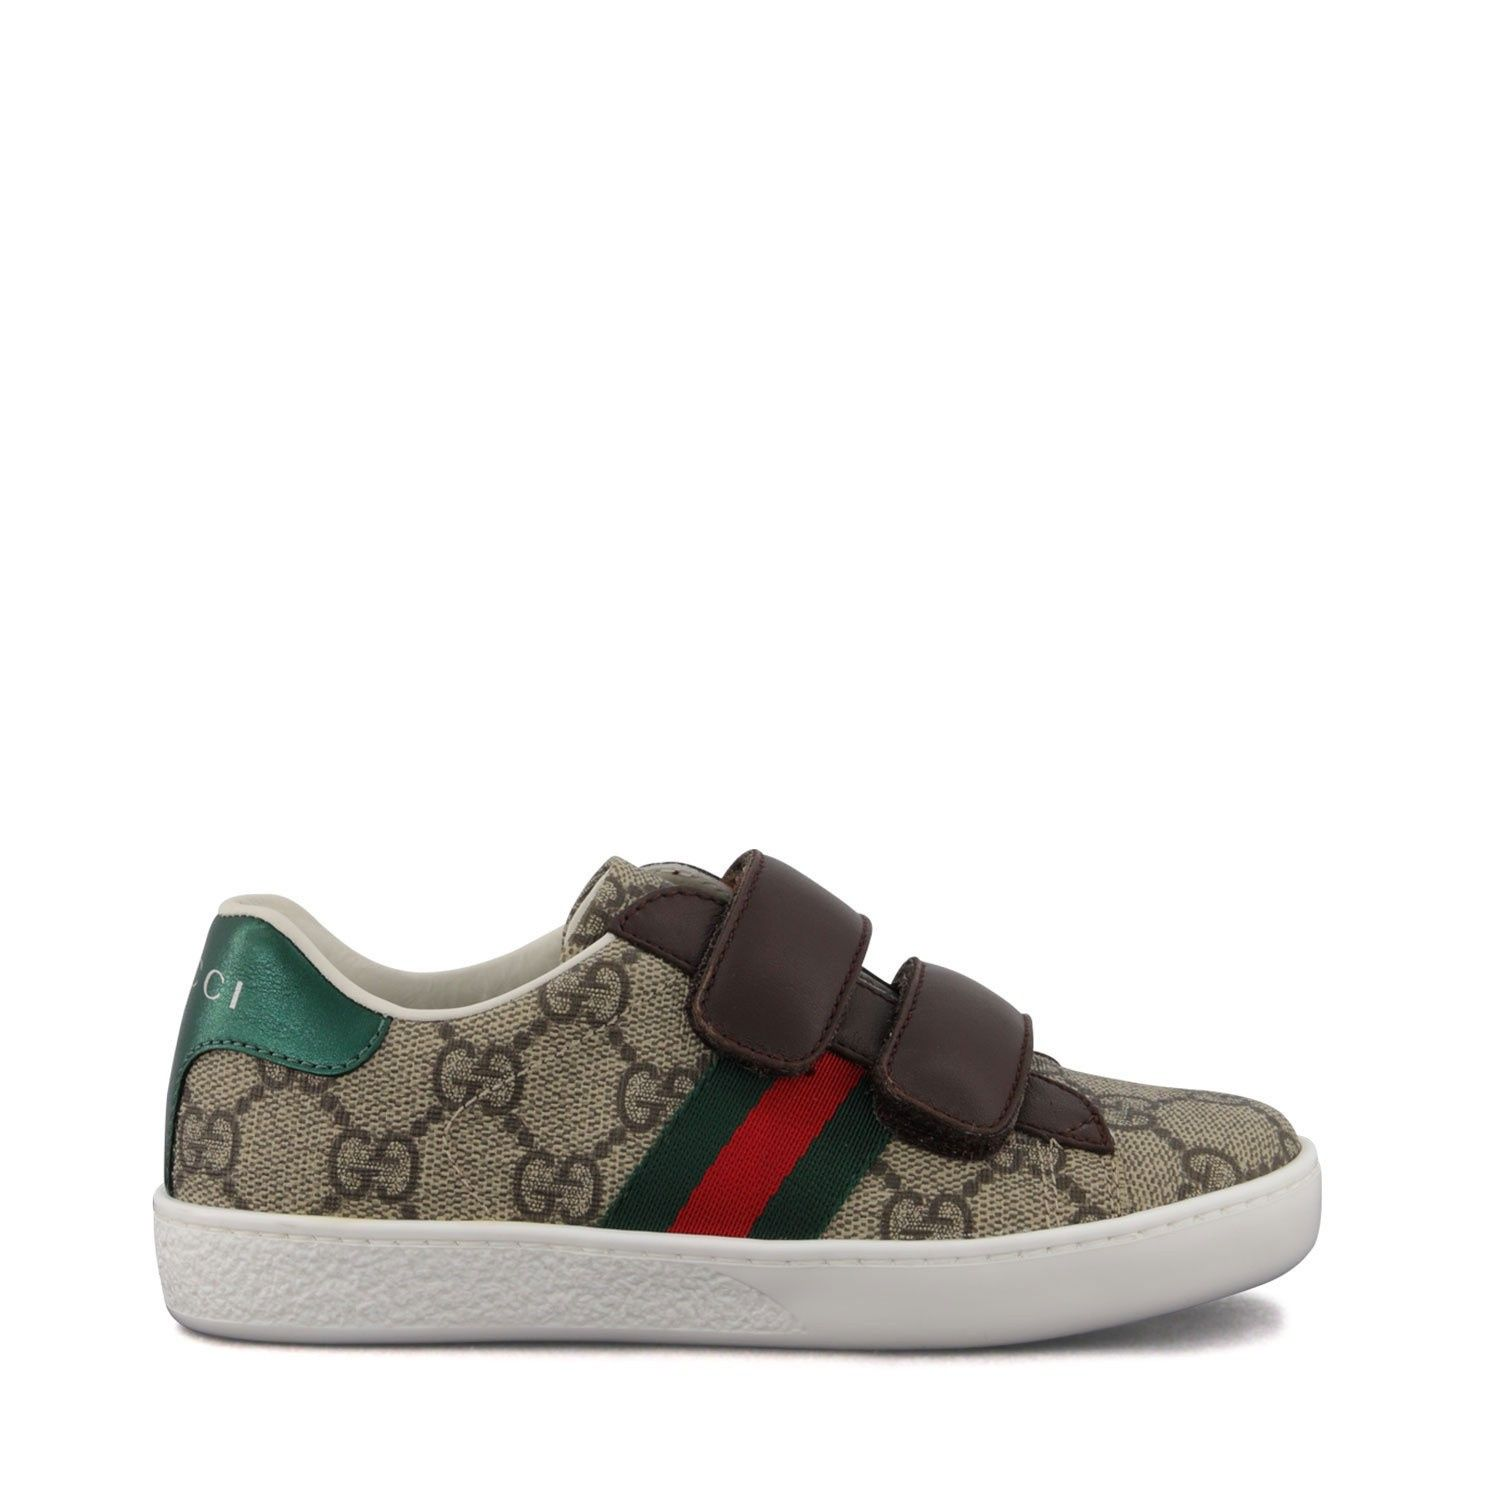 Picture of Gucci 463088 9C220 kids sneakers brown